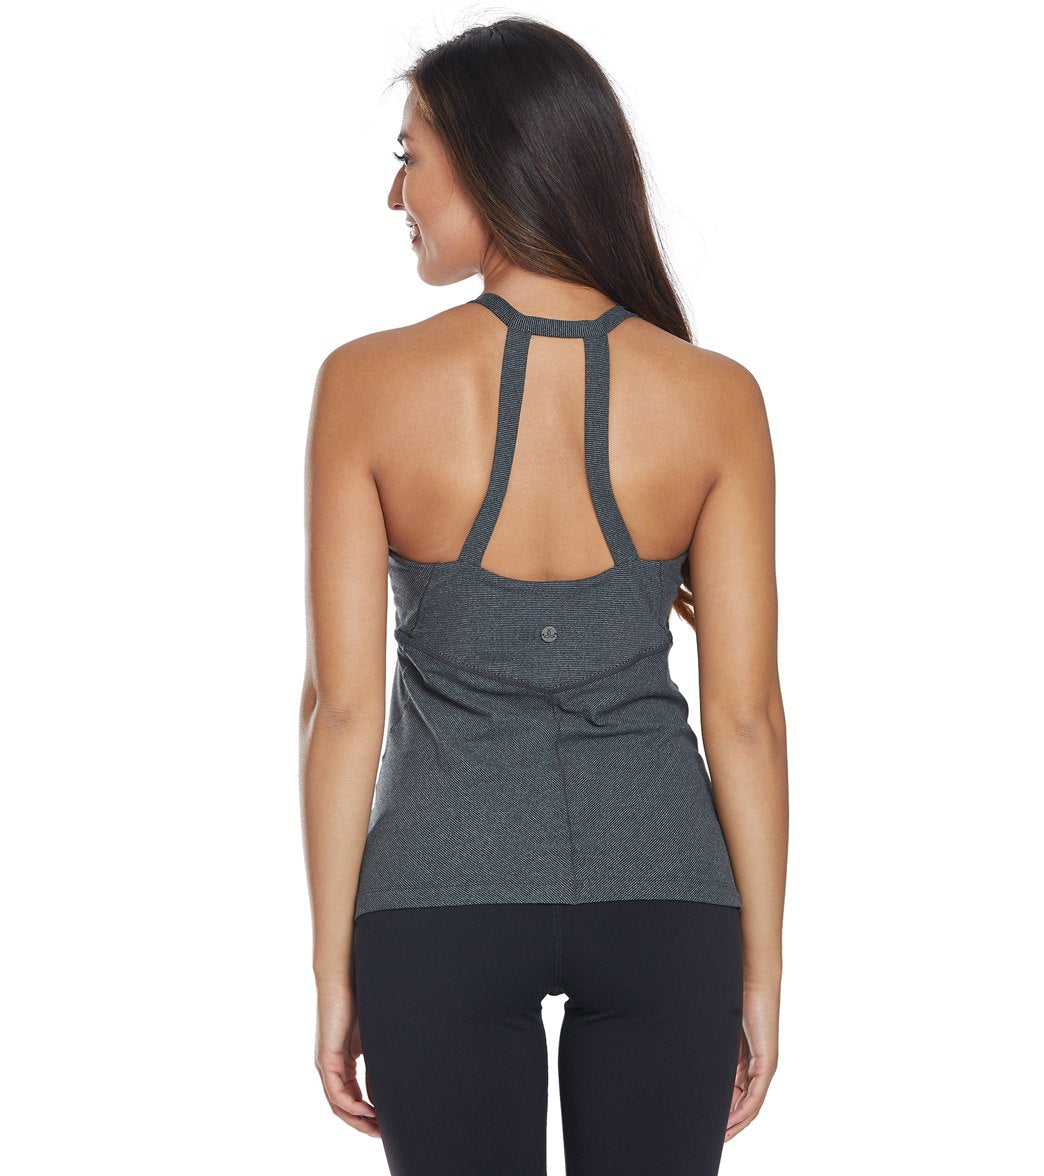 Yoga Tops at Yogaoutlet com